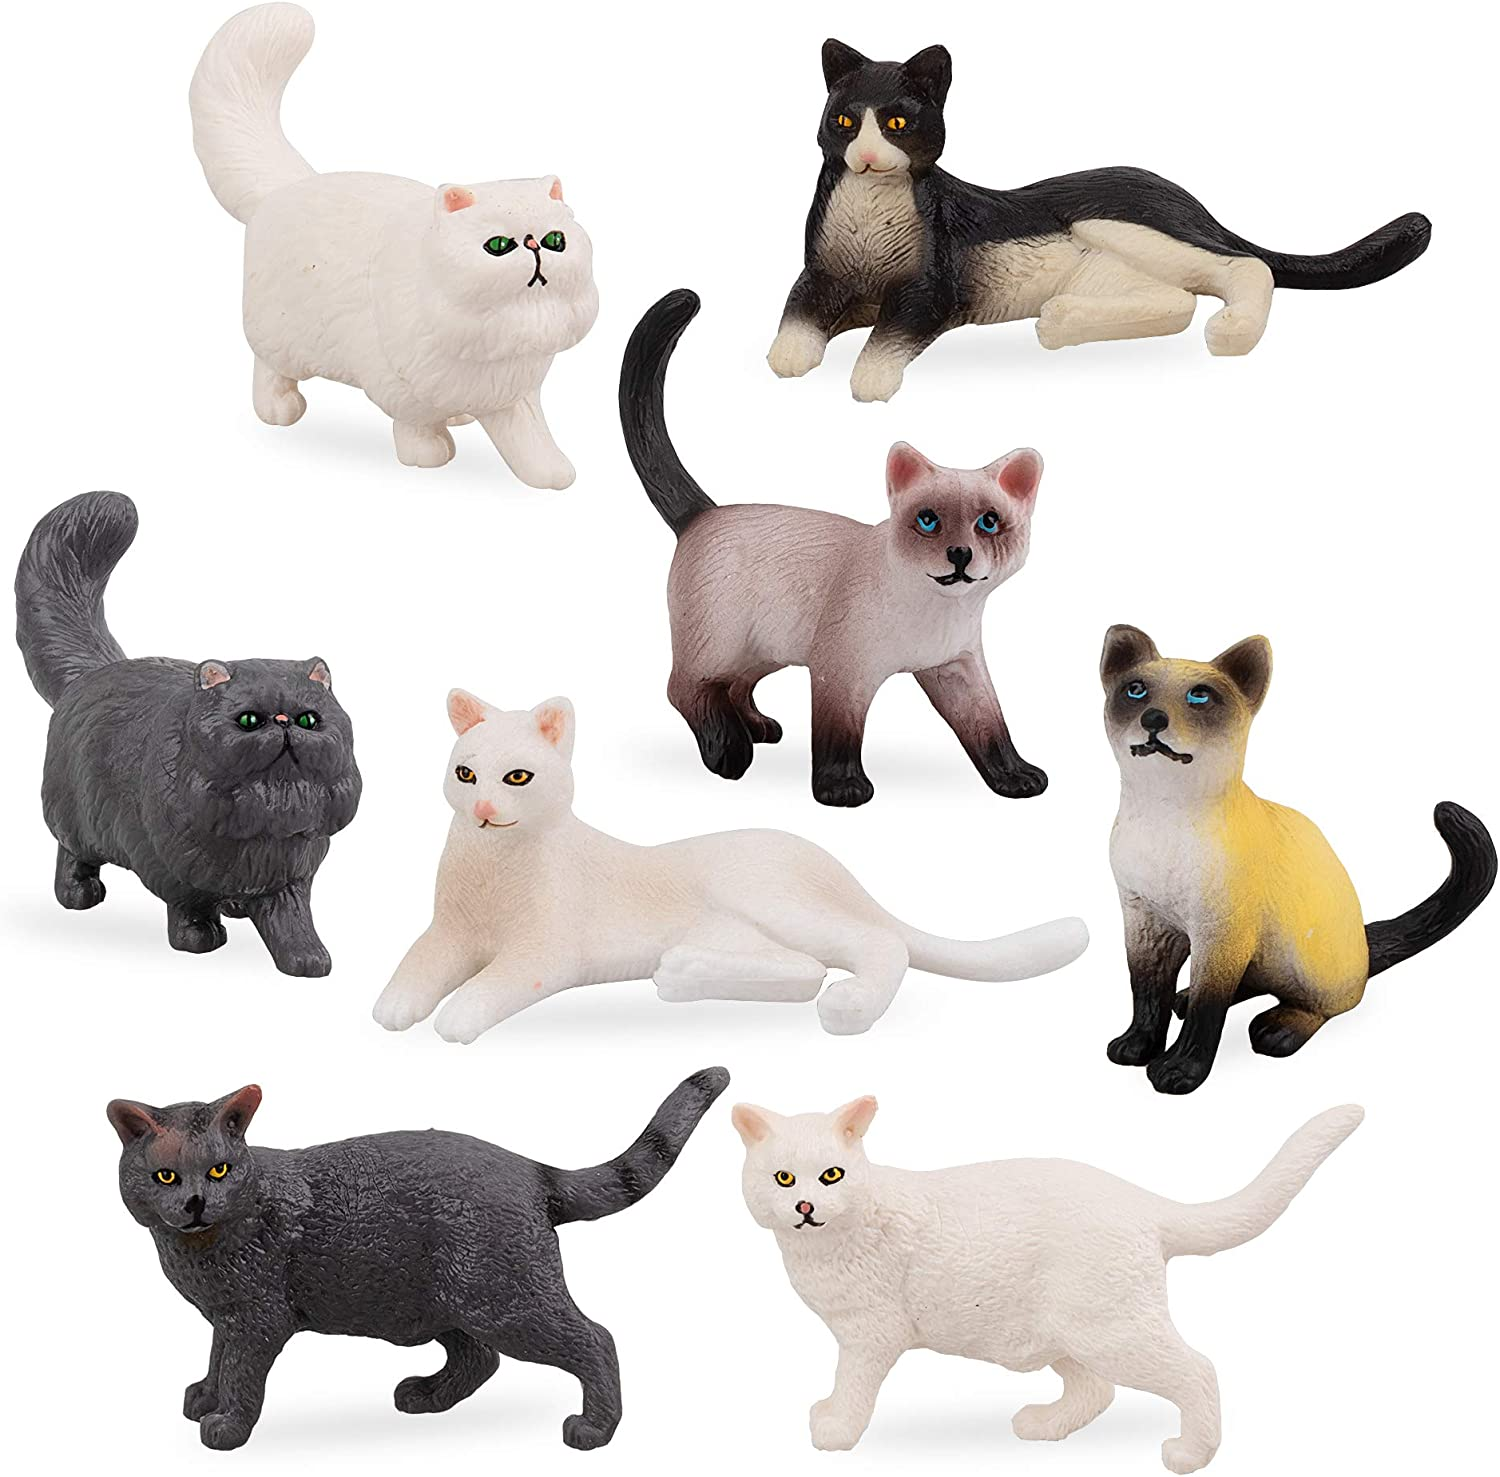 The special gift Favorite animal Felted cat Miniature domestic animal Little cat in miniature Felting Gift idea